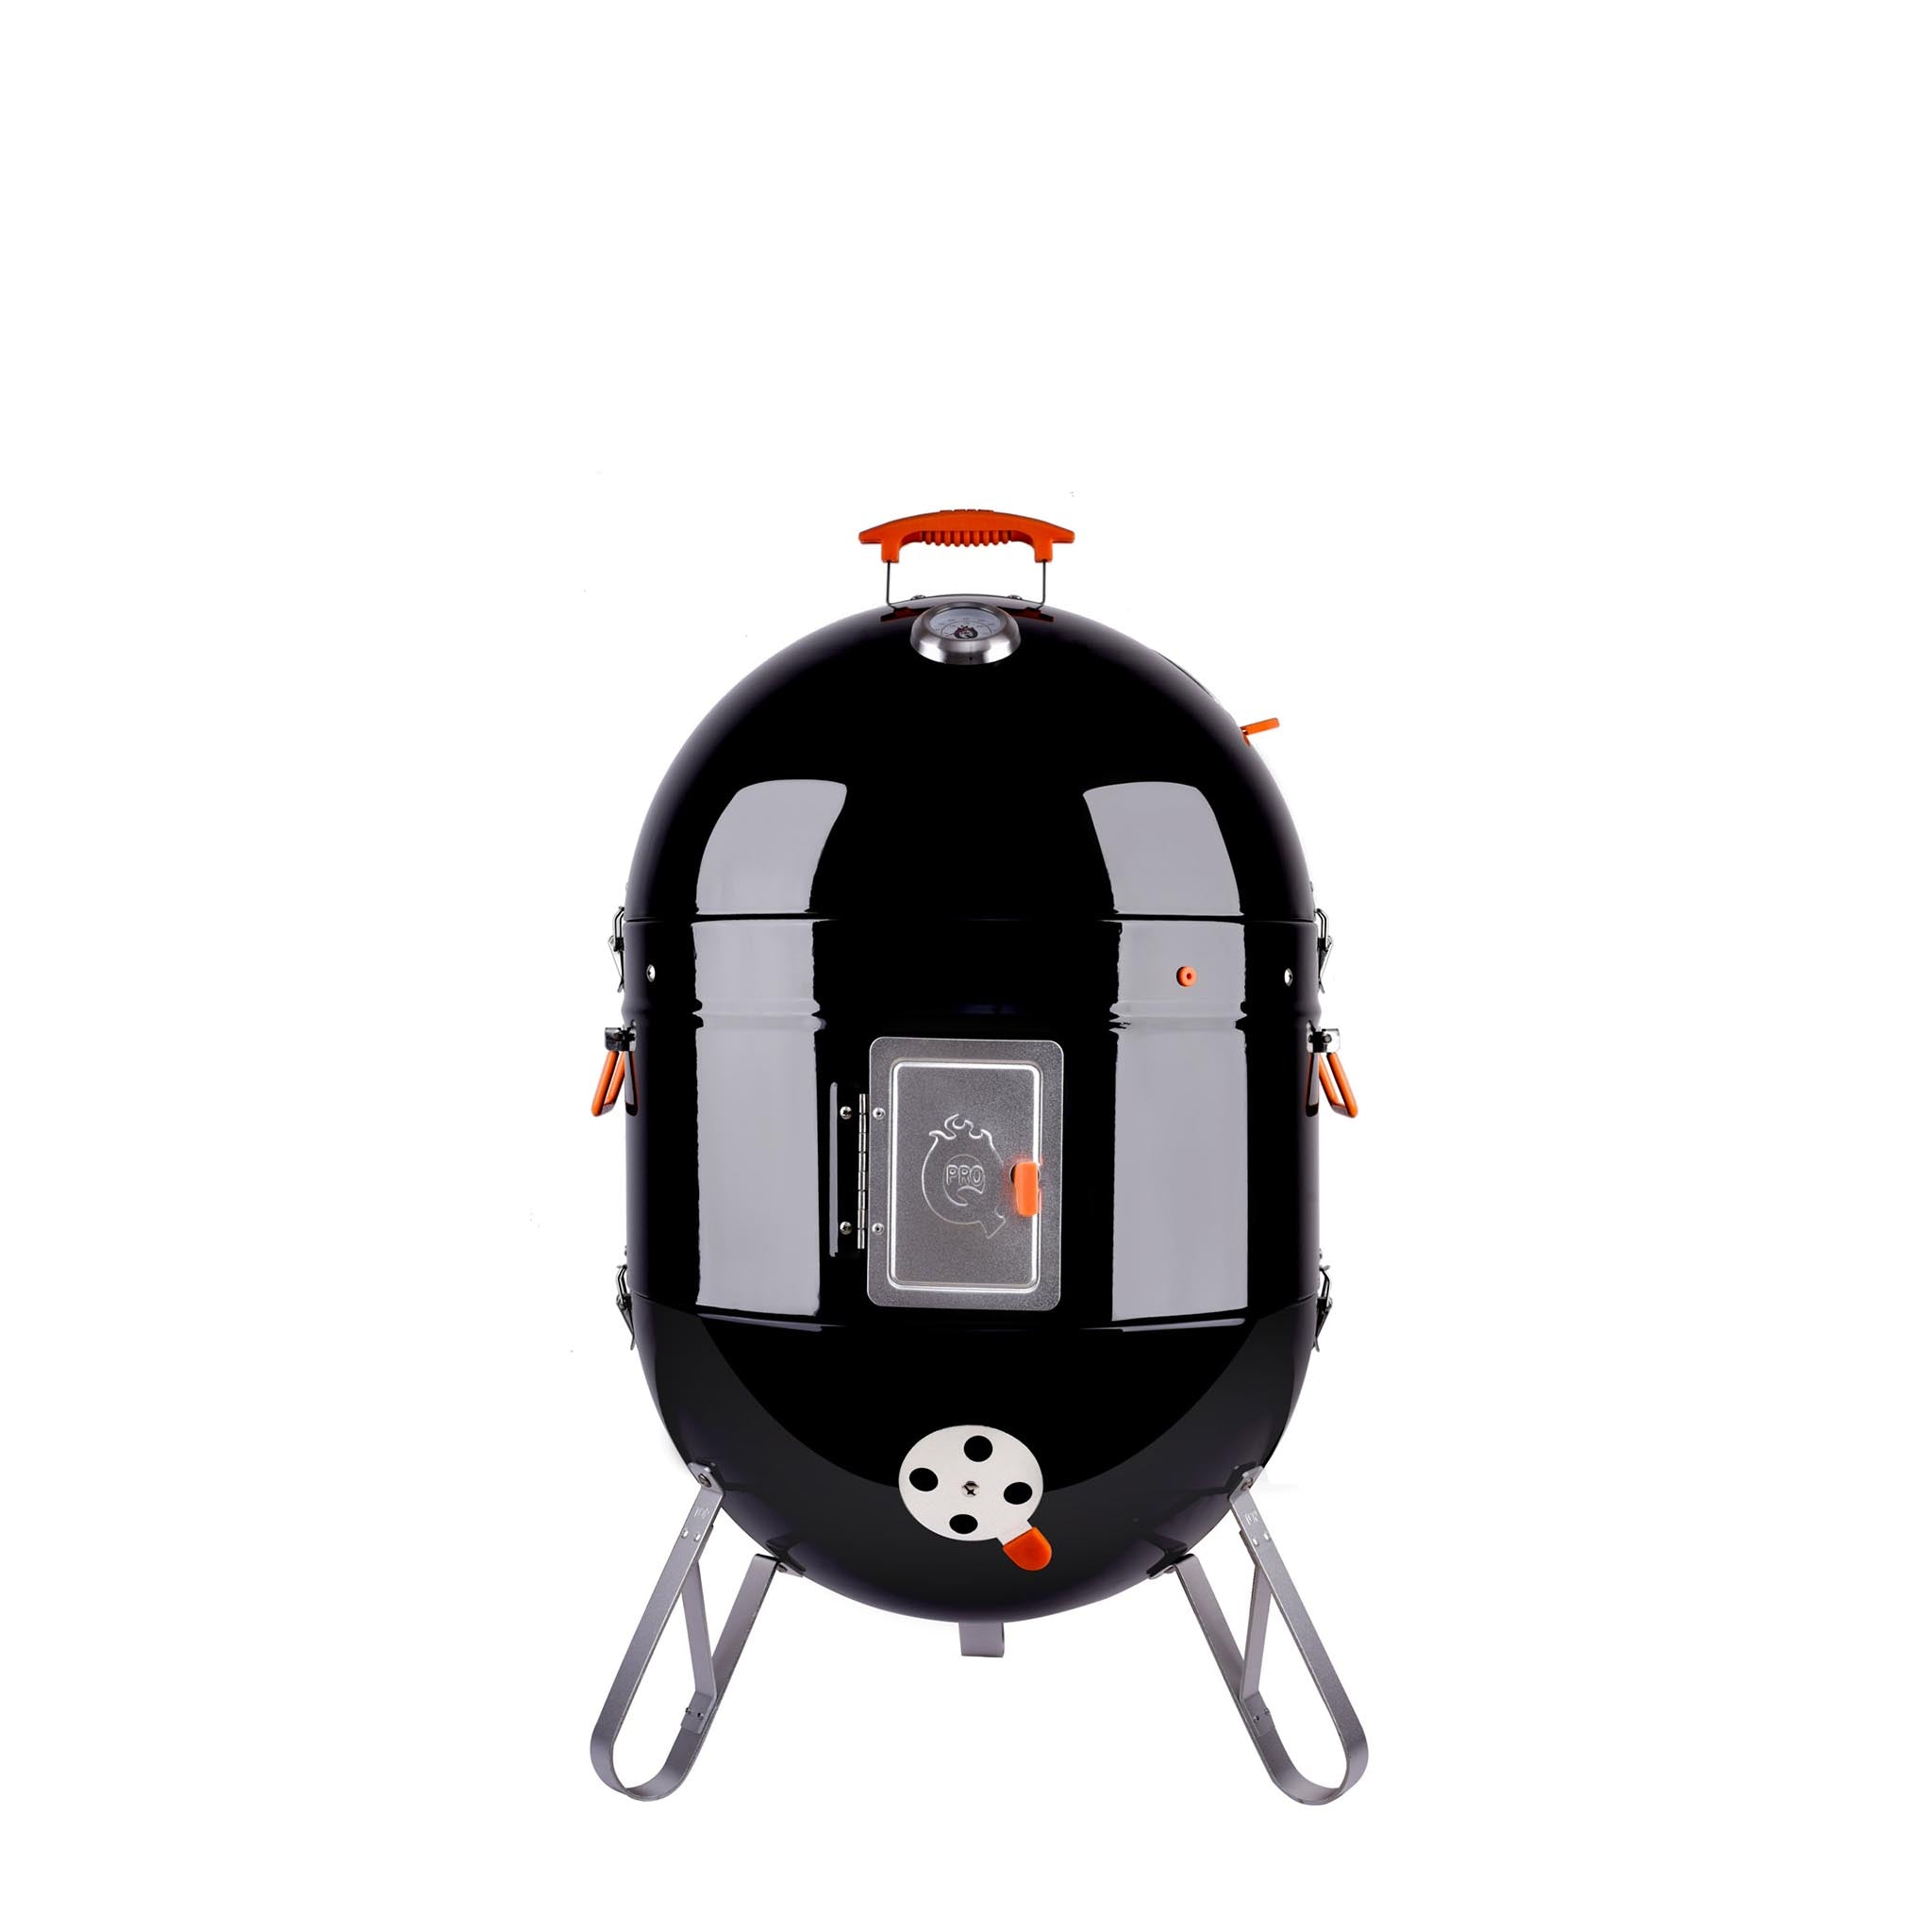 ProQ Excel 20 Elite BBQ Smoker Cookware Food Smokers & BBQ